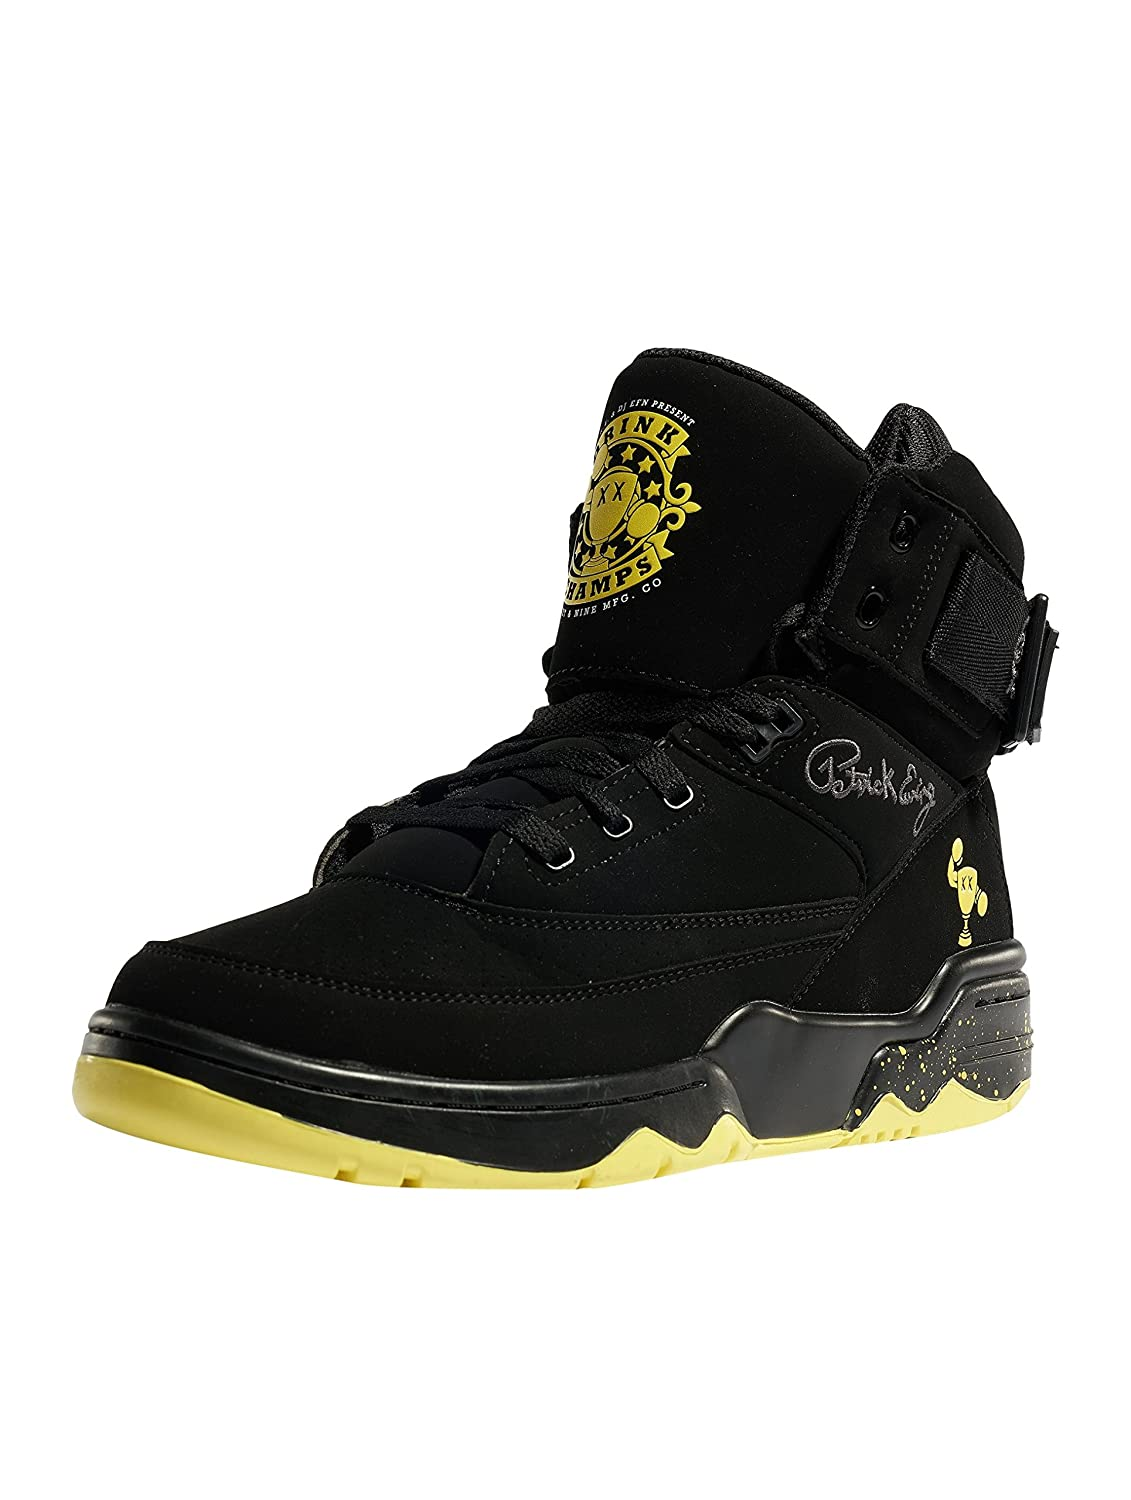 Ewing 33 HI Drink Champs Shoe B07DGWDBKX 10 D(M) US|Black